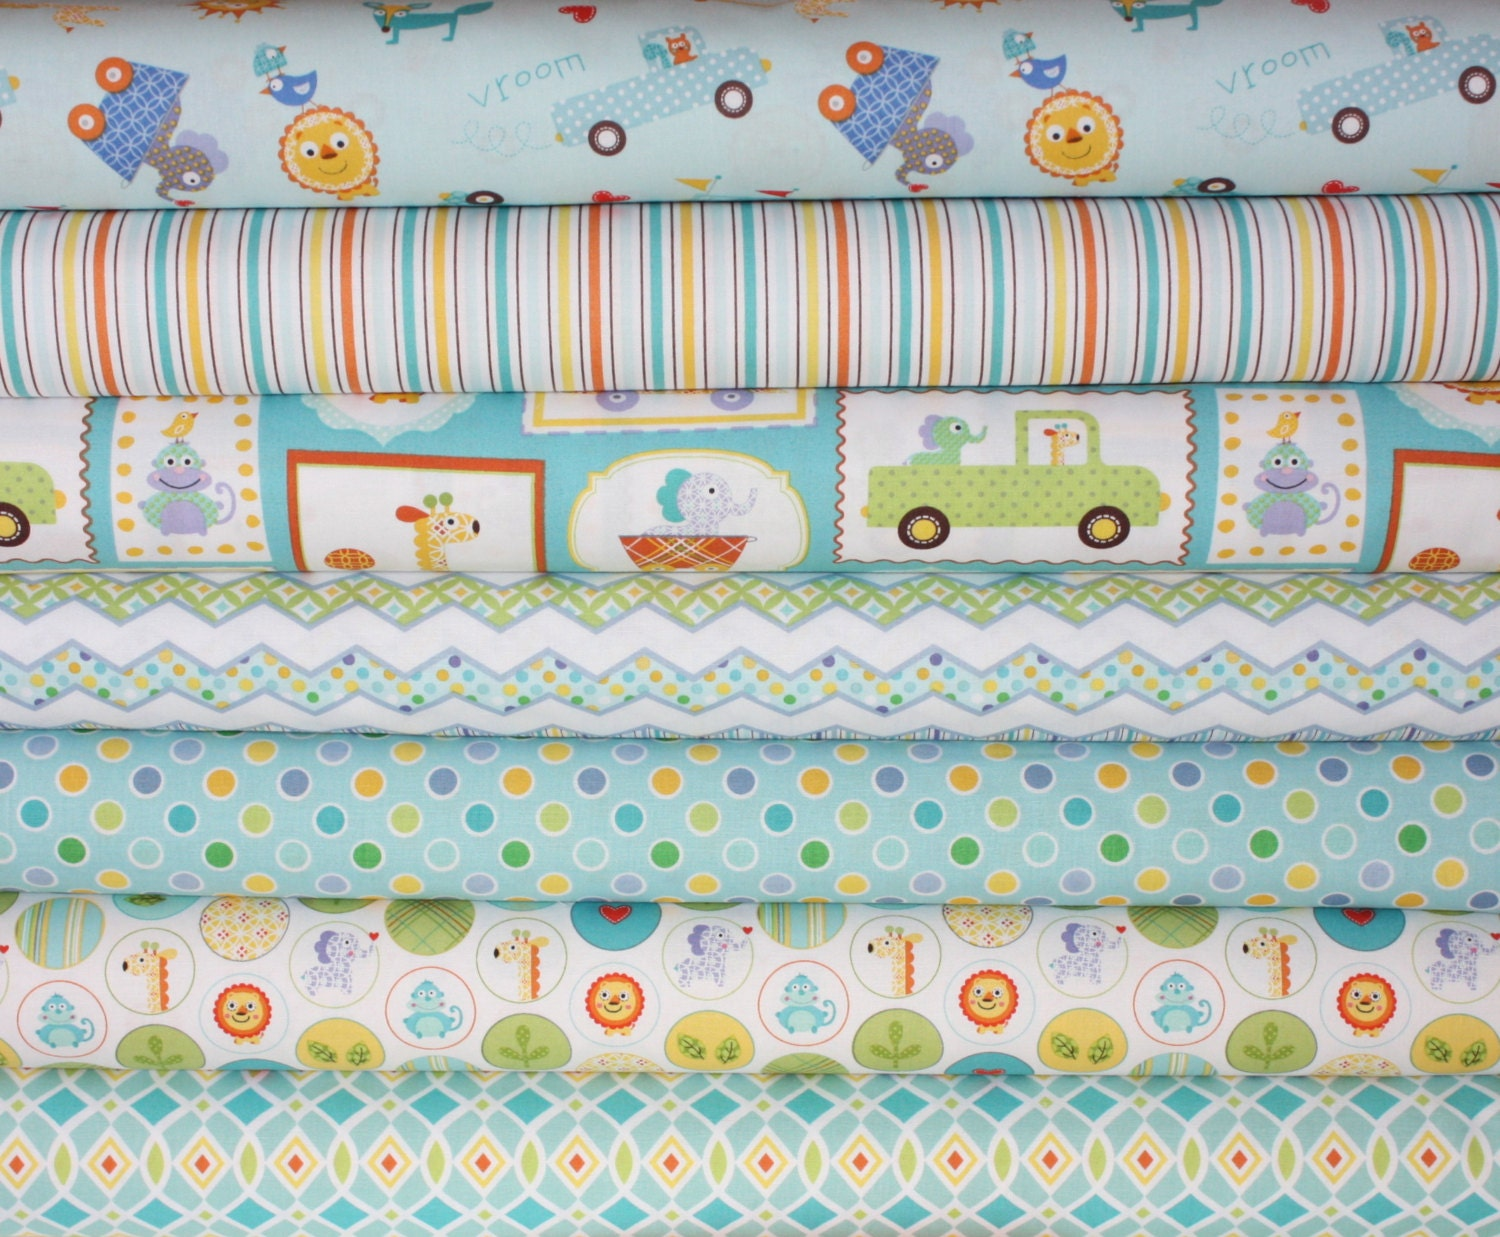 Happi boy quilt or craft fabric bundle by dena designs for for Boy quilt fabric